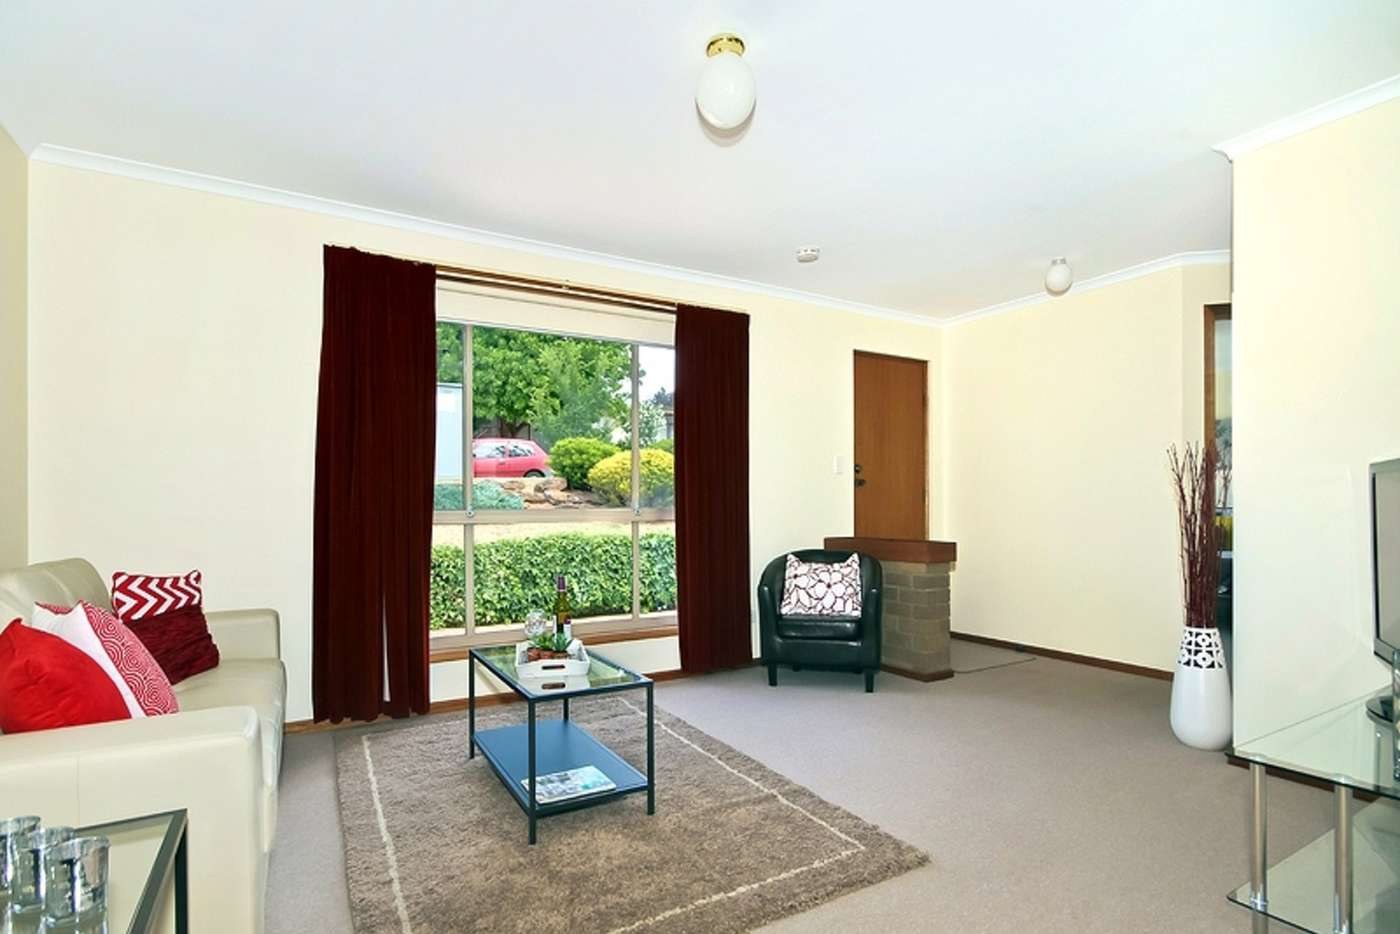 Fifth view of Homely house listing, 28 Saphire Road, Morphett Vale SA 5162